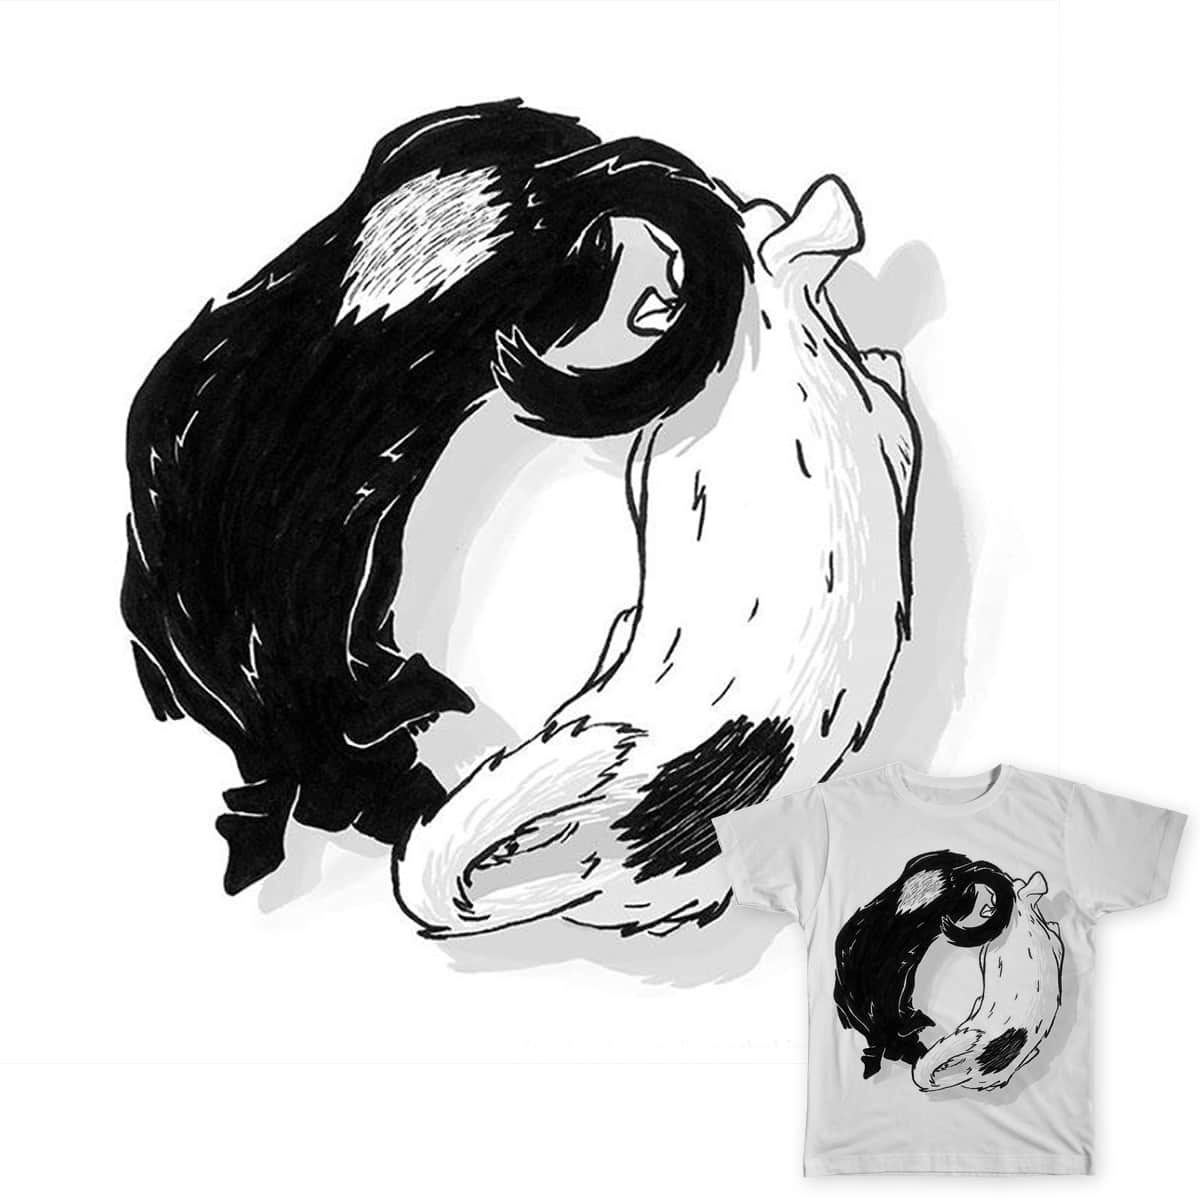 Snif Yang by Leandro Lima on Threadless